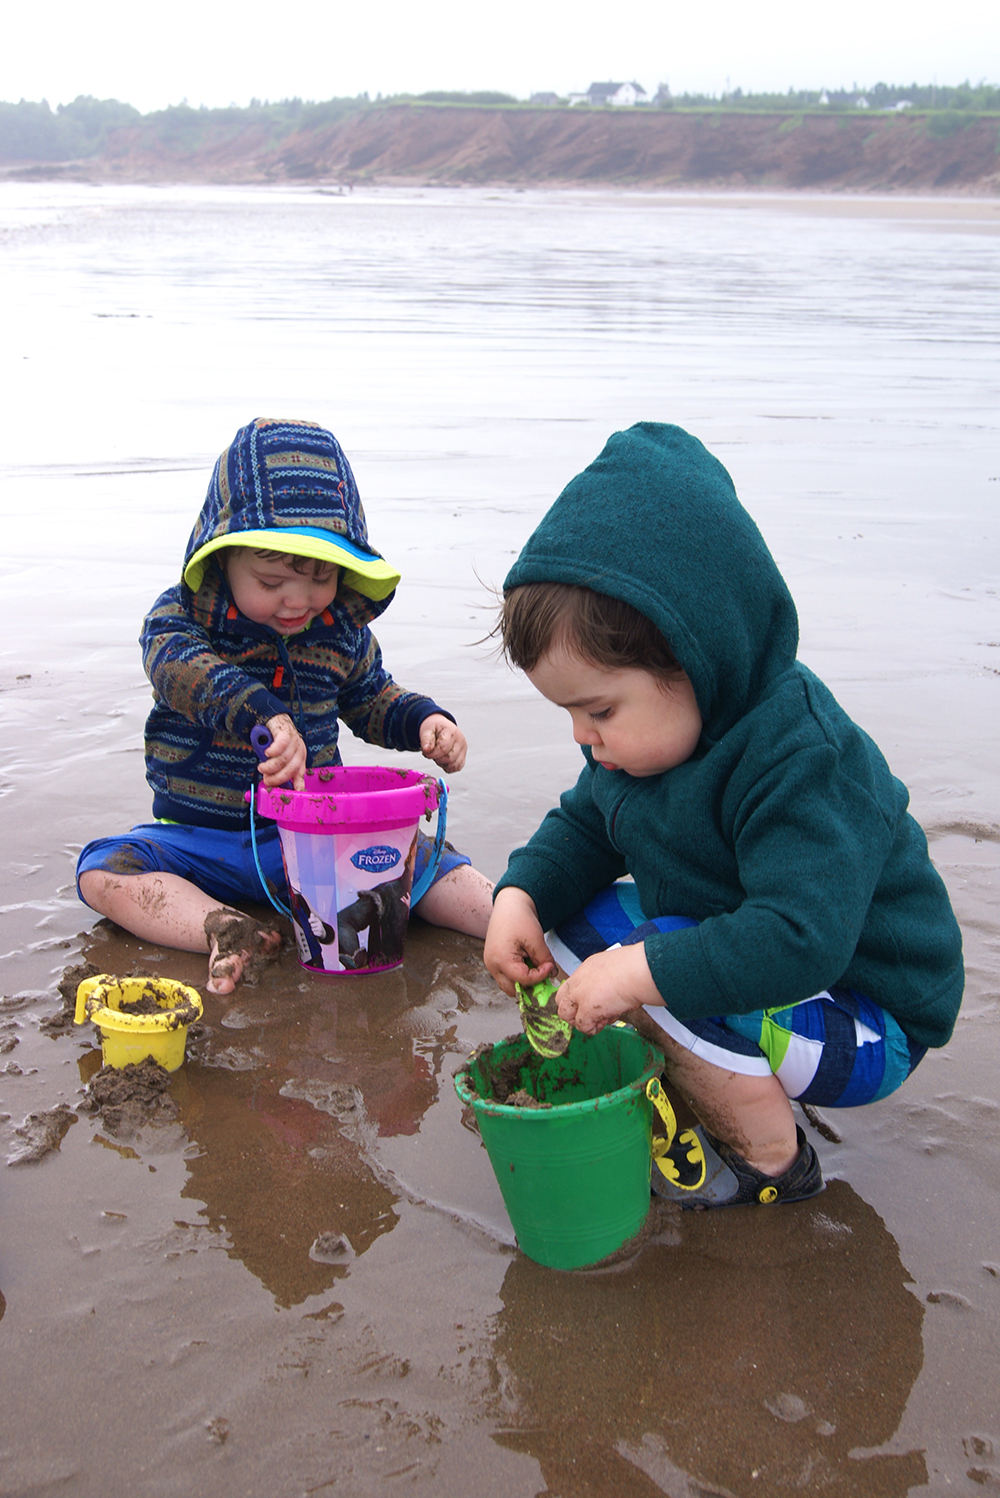 Sam and Rowan playing in the wet sand